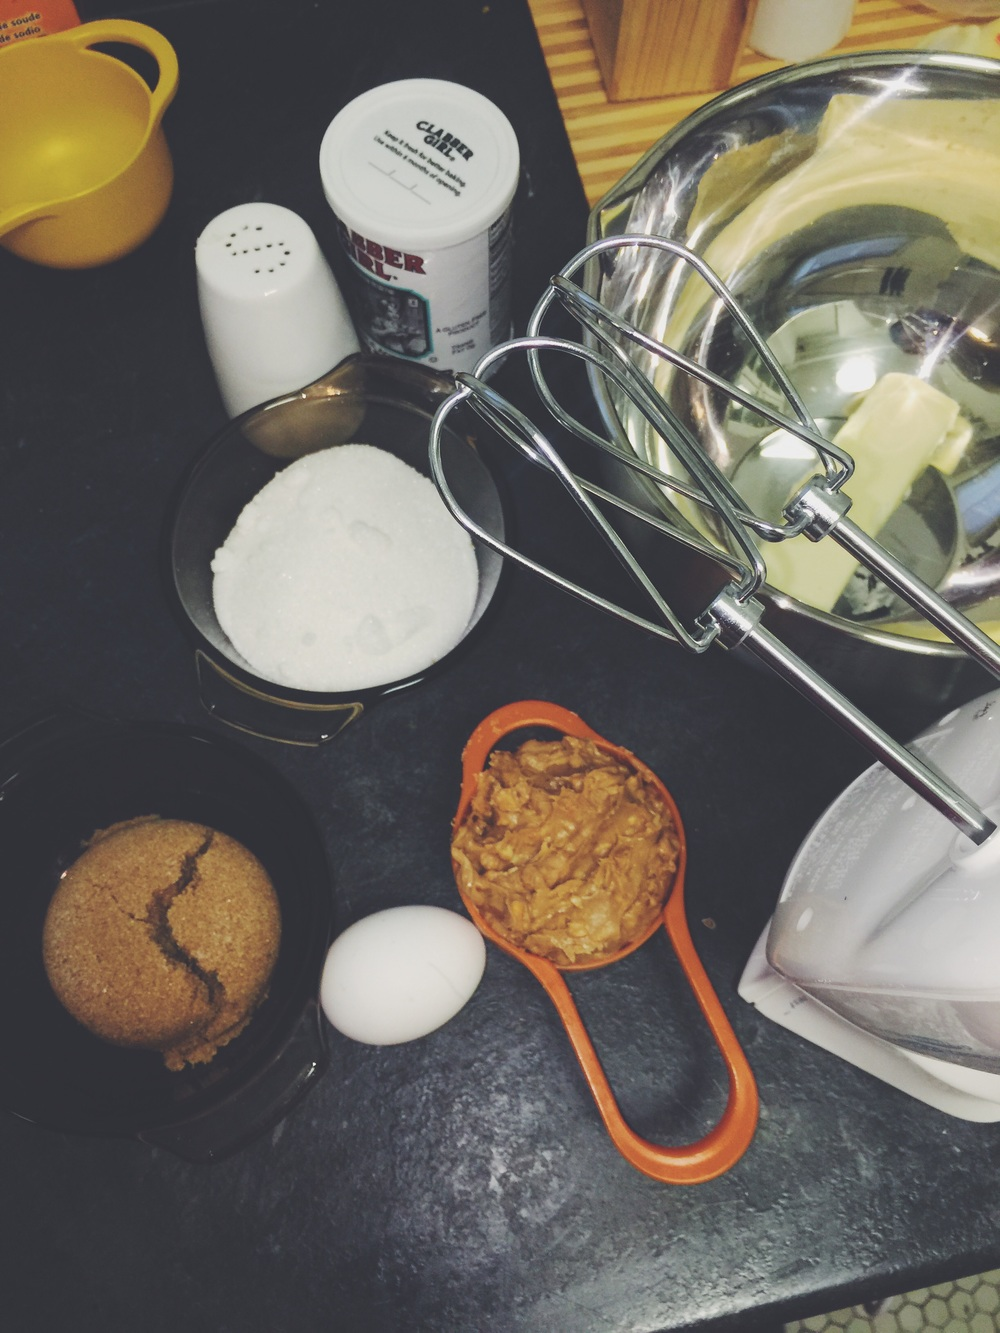 crunchy peanut butter cookie ingredients